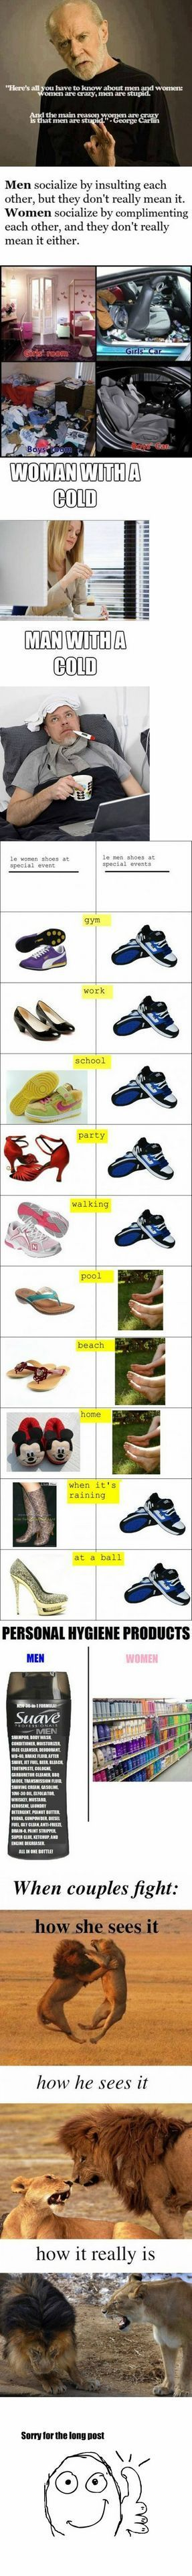 Difference Between Men And Women - very funny